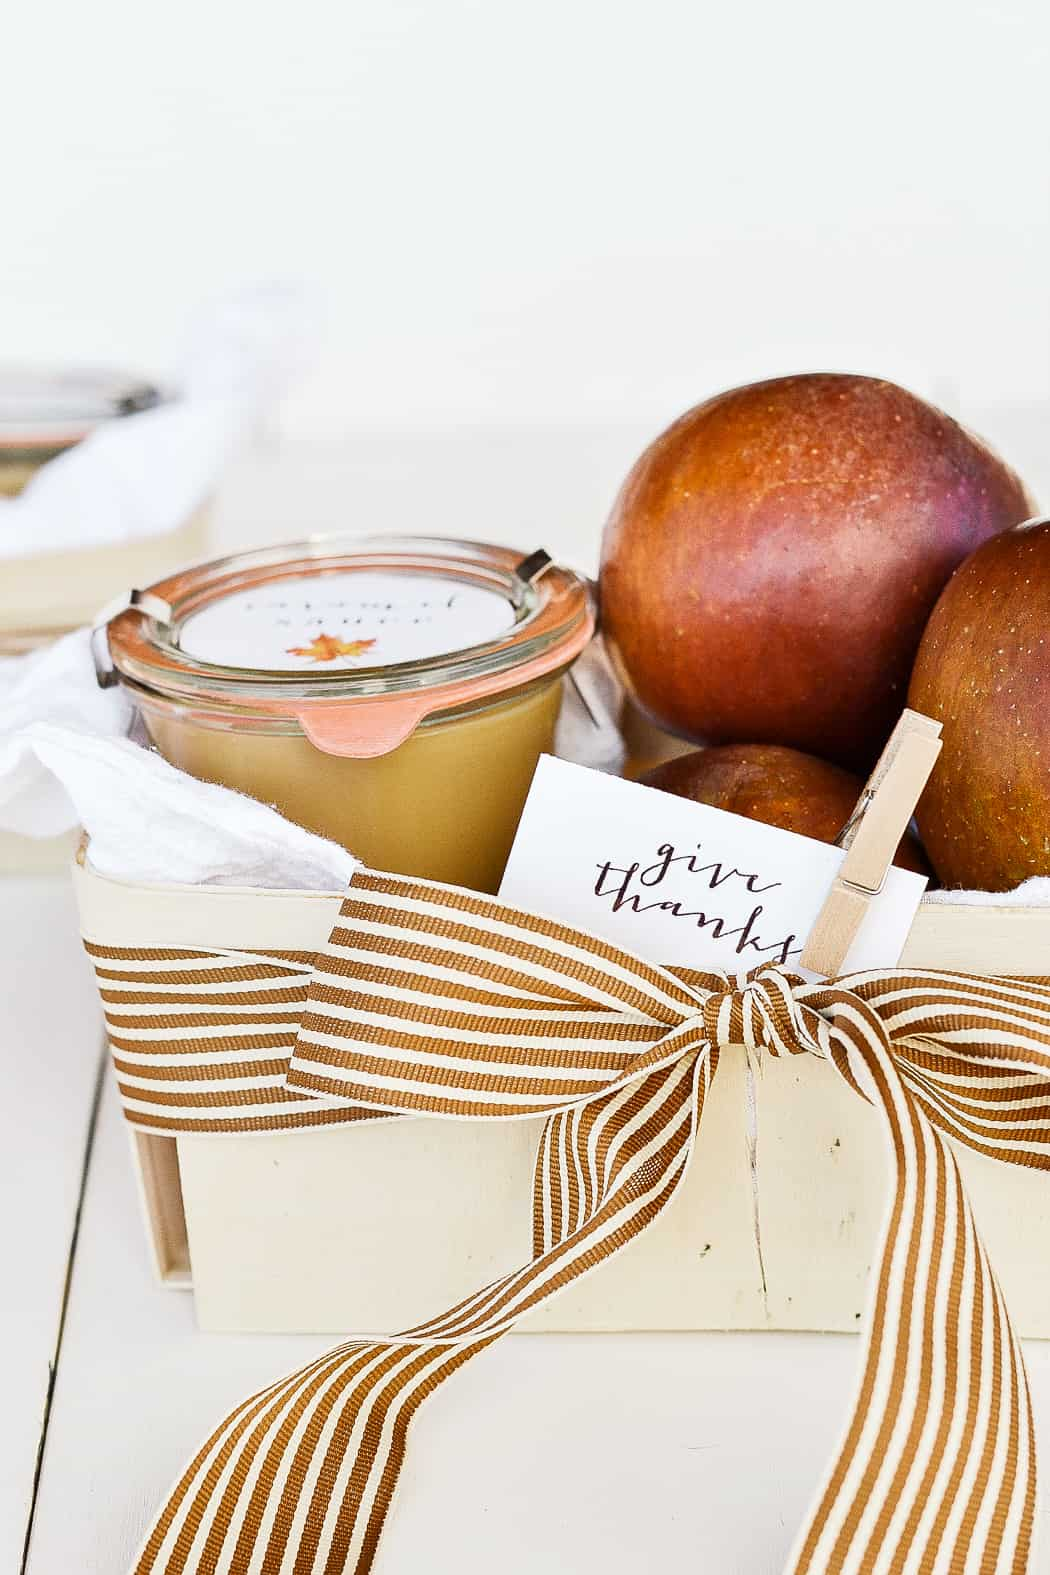 Searching for great thanksgiving gift ideas? Make up a bath of homemade caramel and give with a basket of apples and darling fall tea towel! This inexpensive hostess gift is the perfect thanksgiving gift!